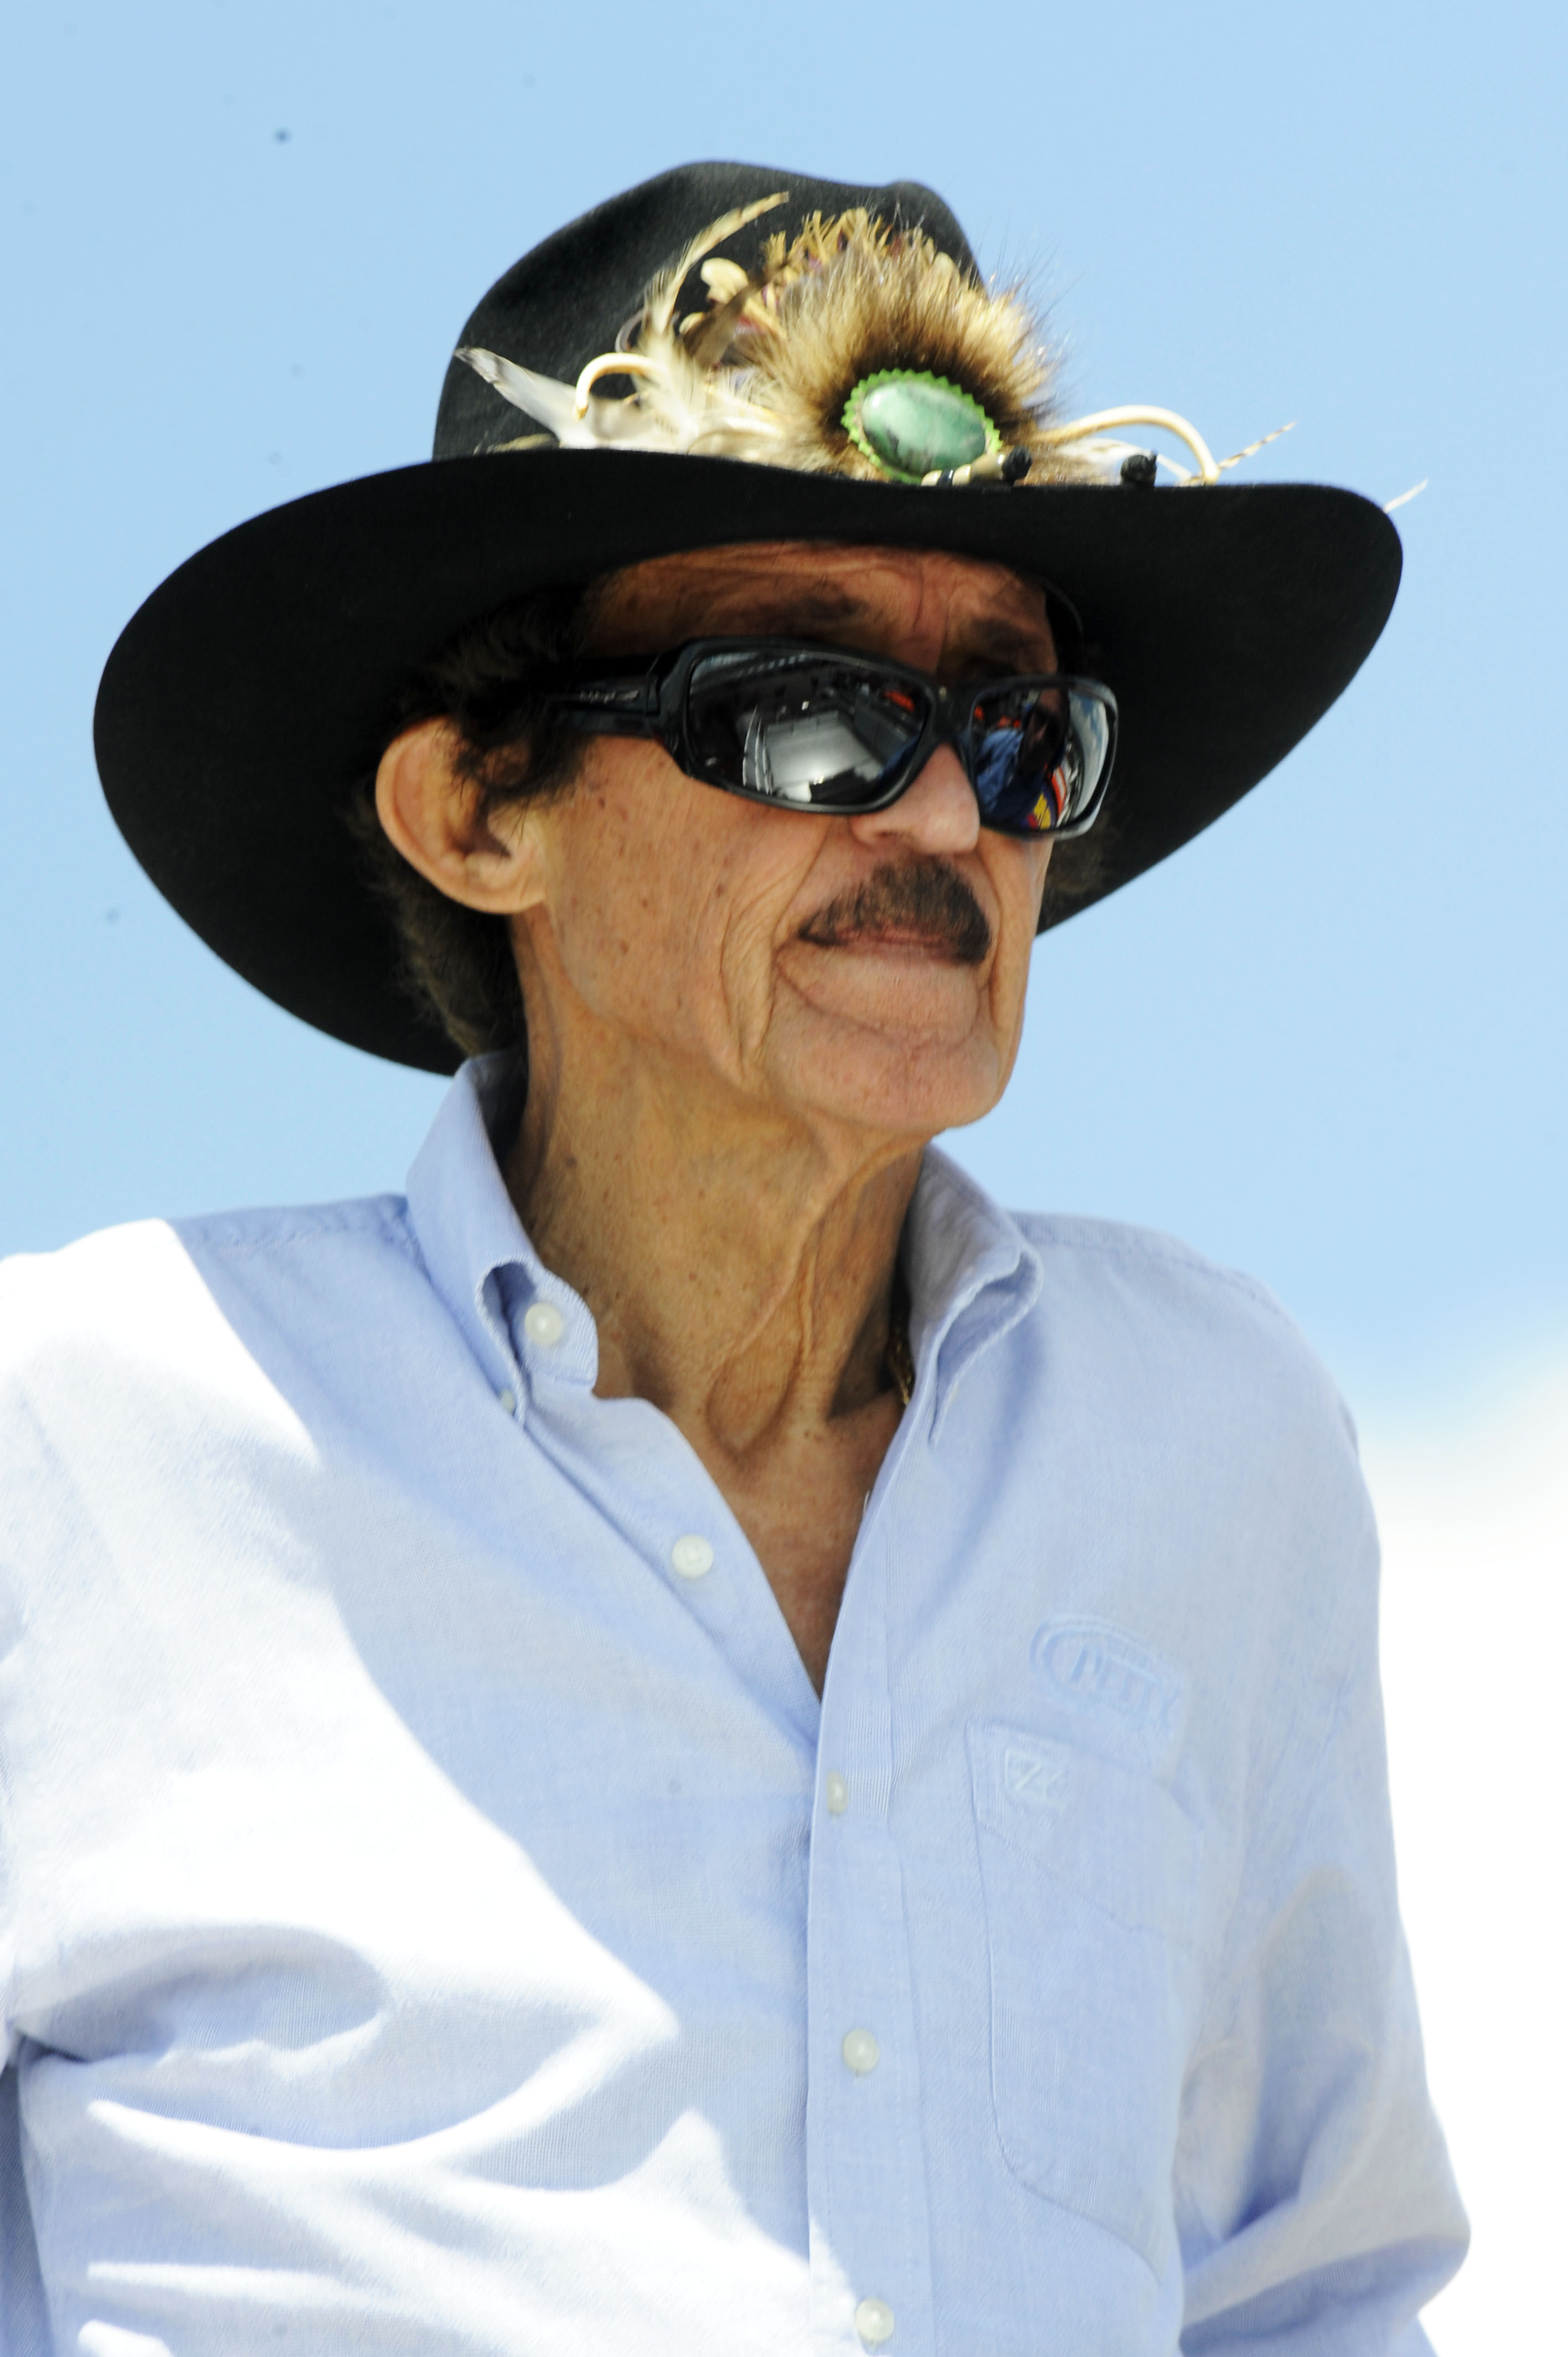 LONG POND, PA - JULY 30:  Team owner Richard Petty watches practice for the NASCAR Sprint Cup Series Sunoco Red Cross Pennsylvania 500 at Pocono Raceway on July 30, 2010 in Long Pond, Pennsylvania.  (Photo by John Harrelson/Getty Images for NASCAR)